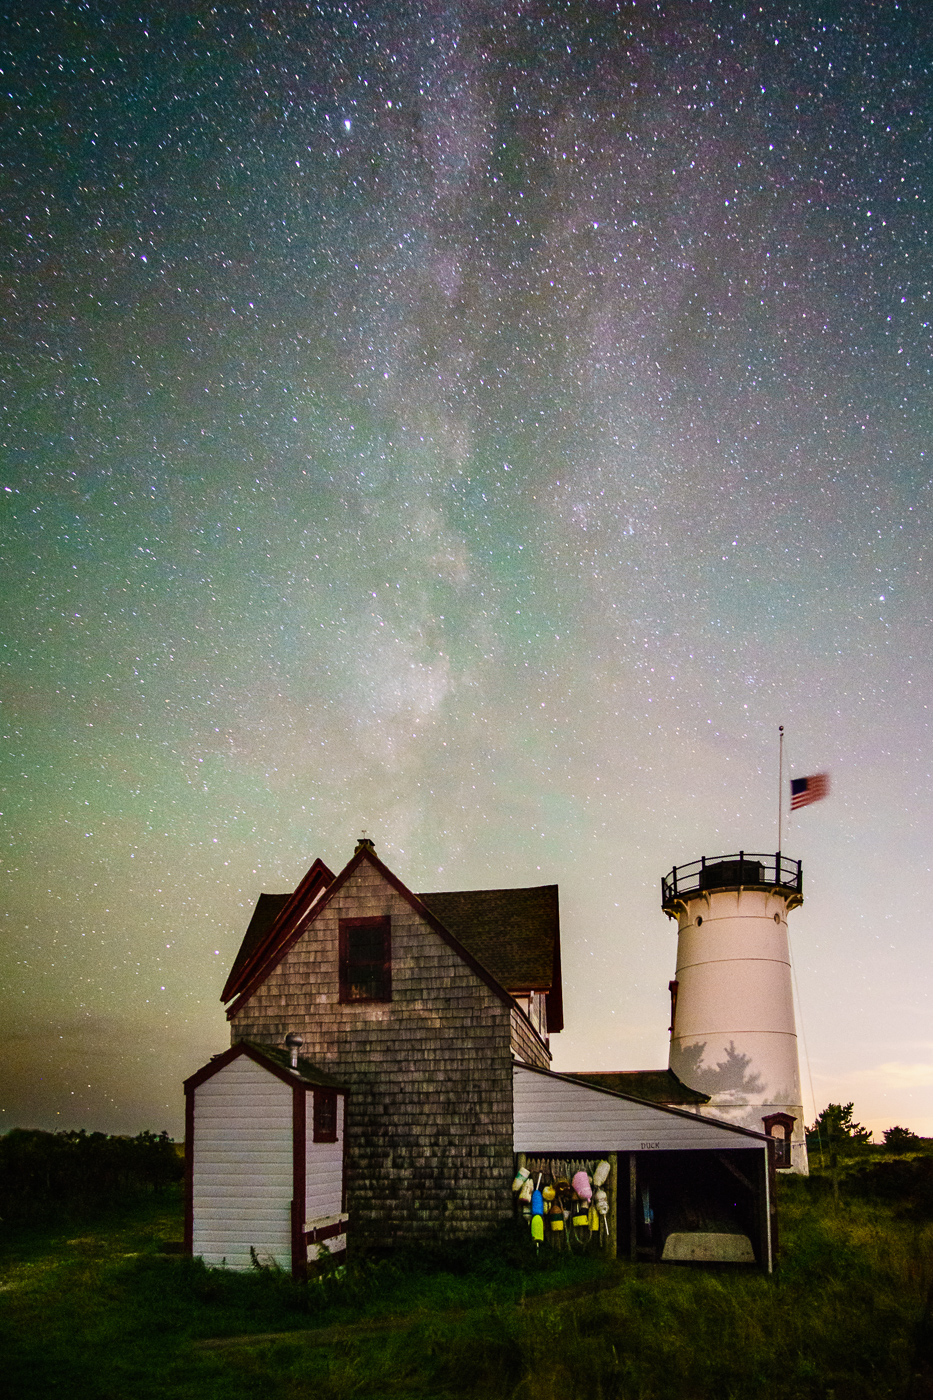 Stage Harbor Lighthouse Milky Way.jpg